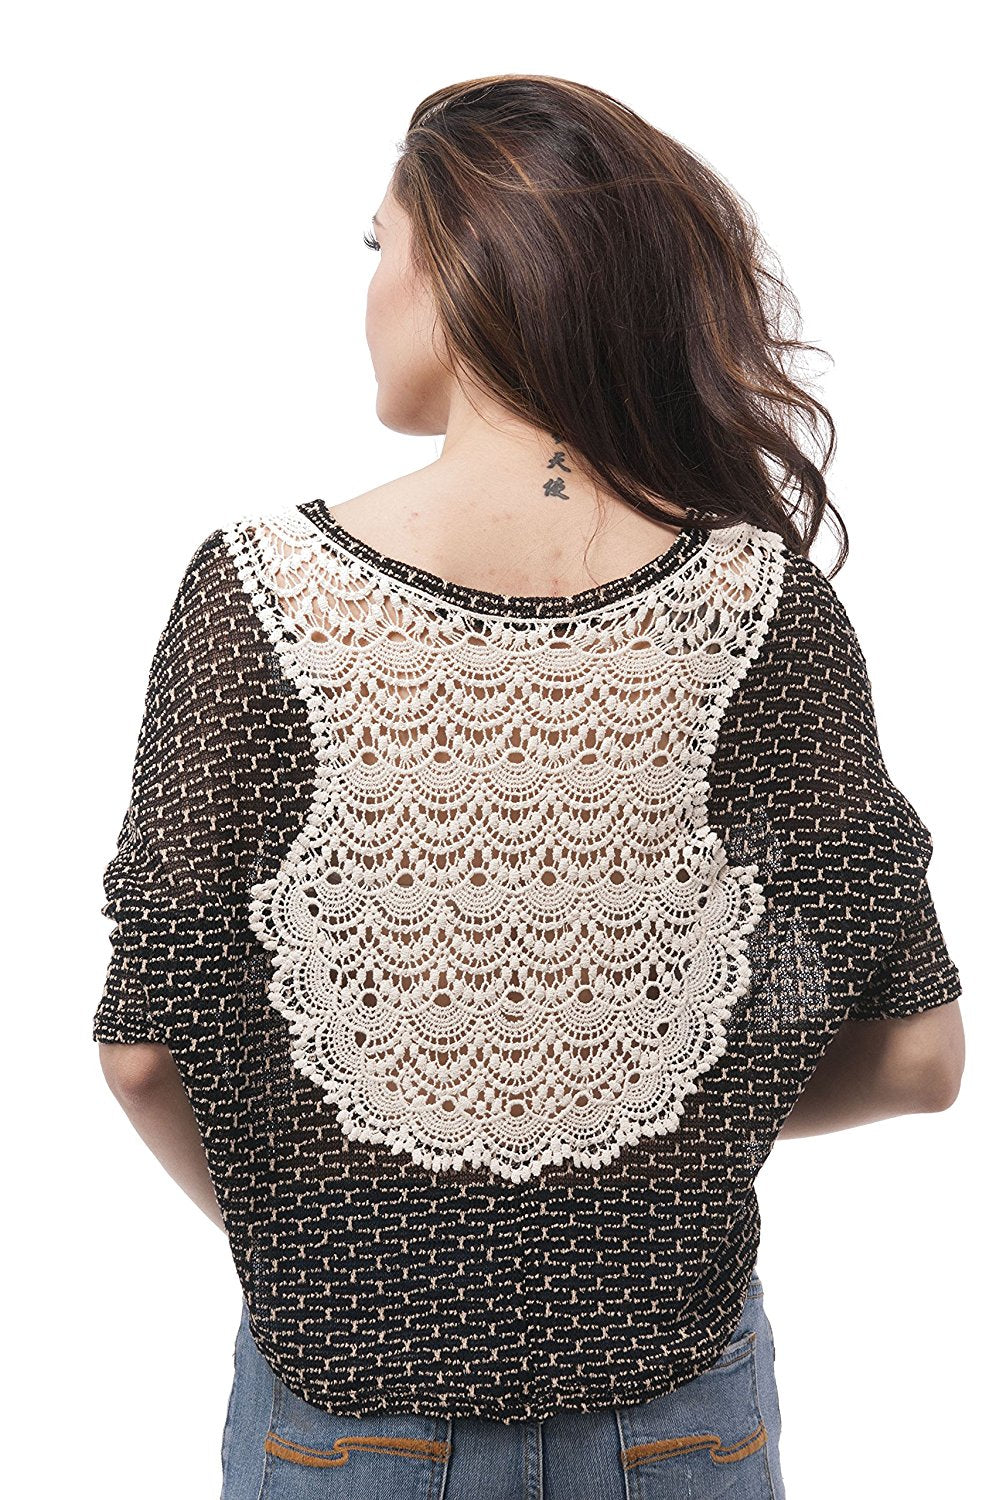 Batwing crop top with knit design on back